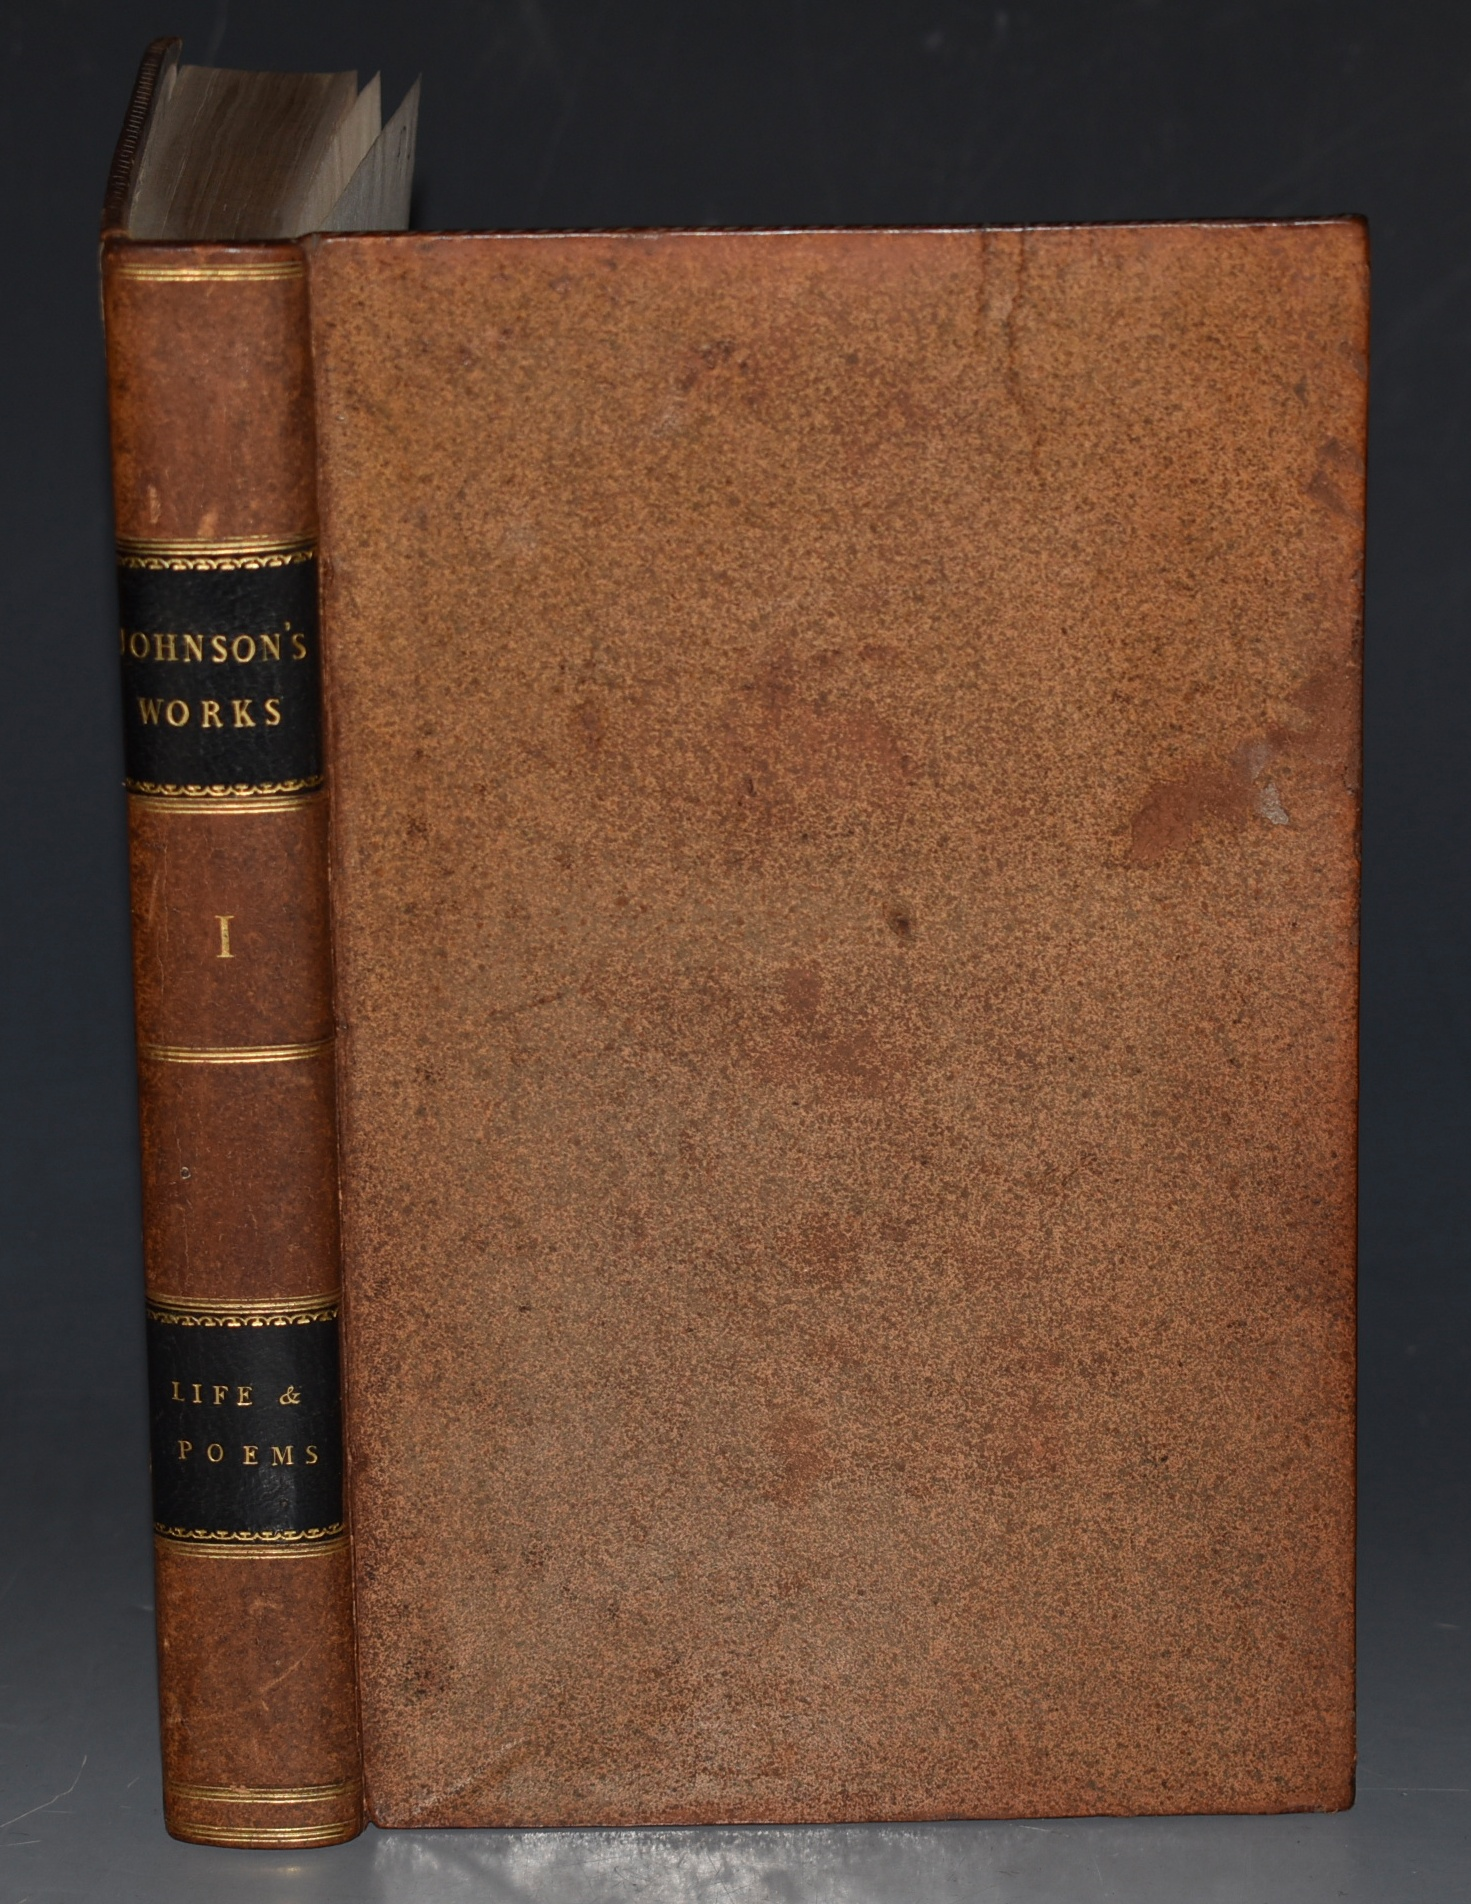 Image for The Works of Samuel Johnson. A New Edition. In Twelve Volumes (Continued to Fifteen Volumes). With an Essay on His Life and Genius by Arthur Murphy, Esq. Continued to Fifteen Volumes with the addition of three further volumes: 'Debates in Parliament,' and 'Sermons/Prayers and Meditations.'